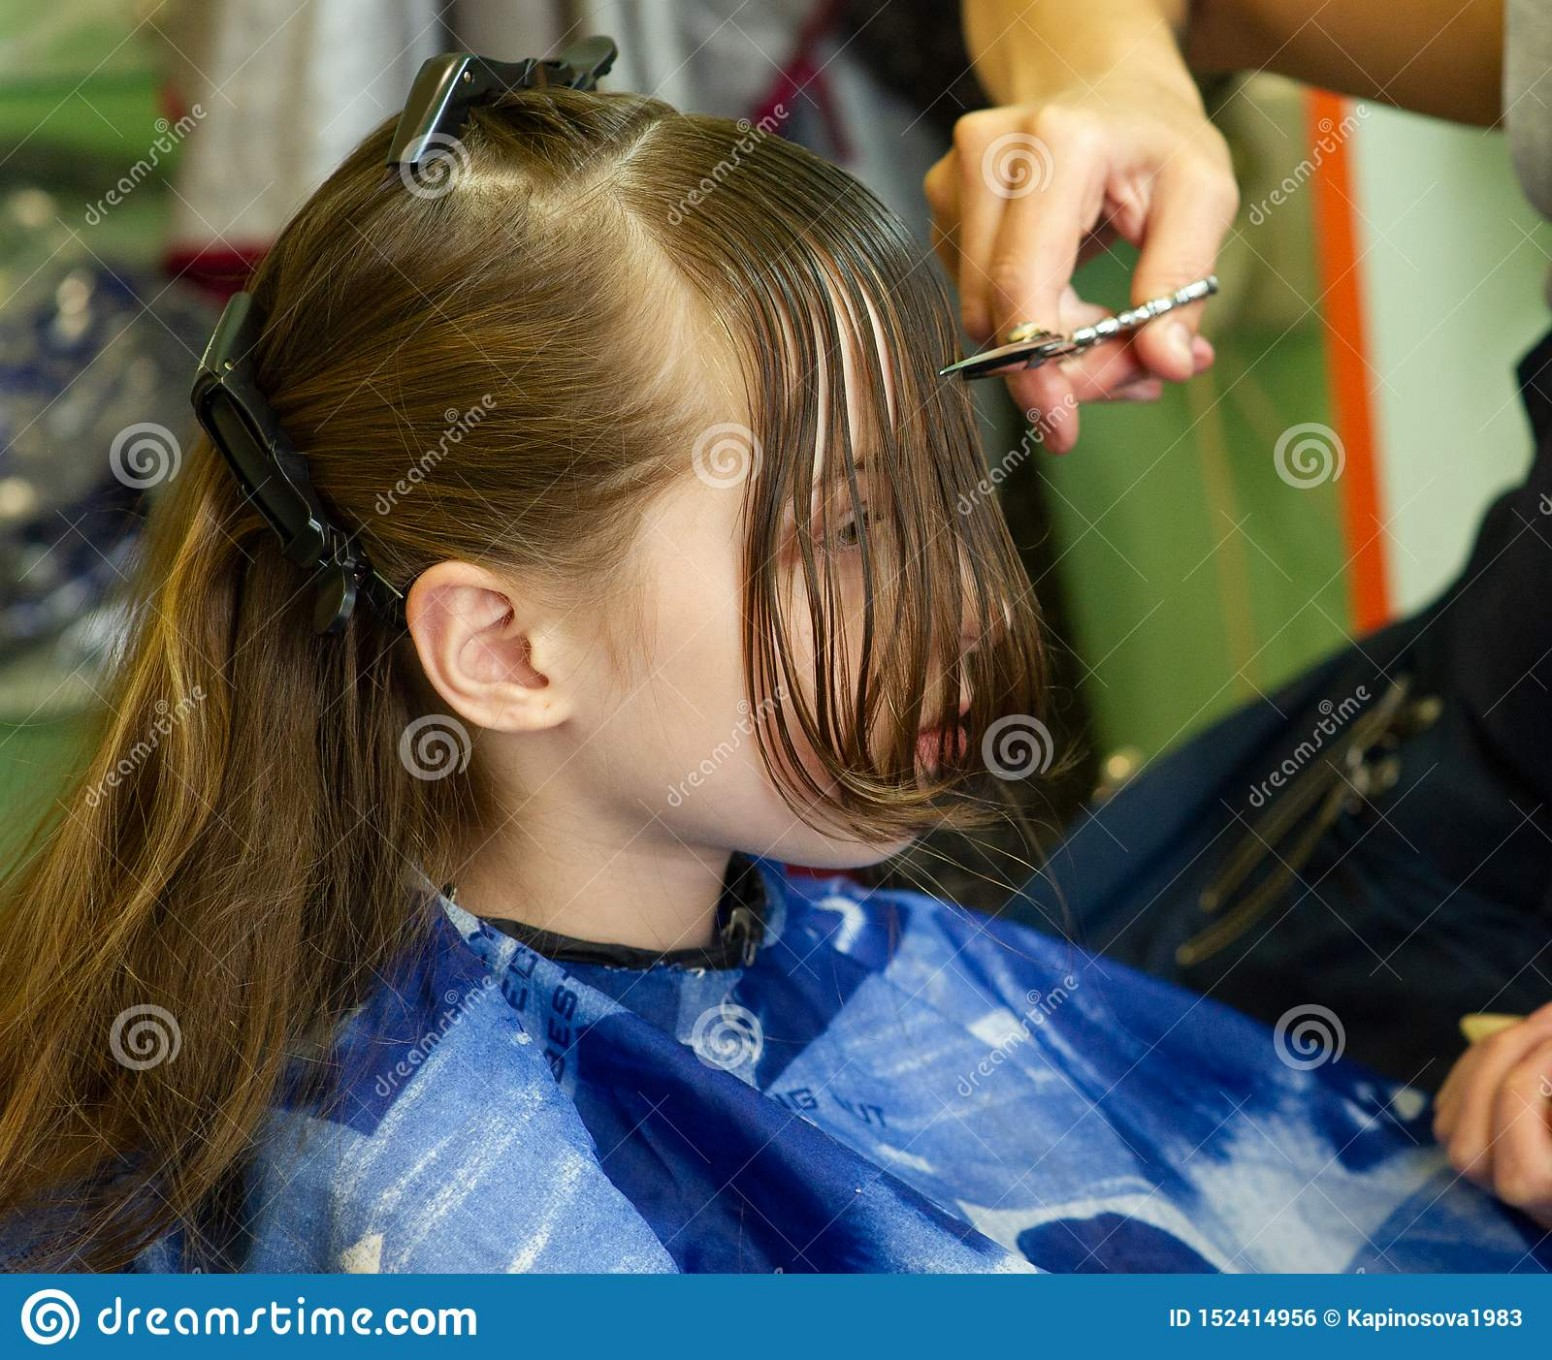 Hairdresser Making A Hair Style To Cute Little Girl Stock Photo